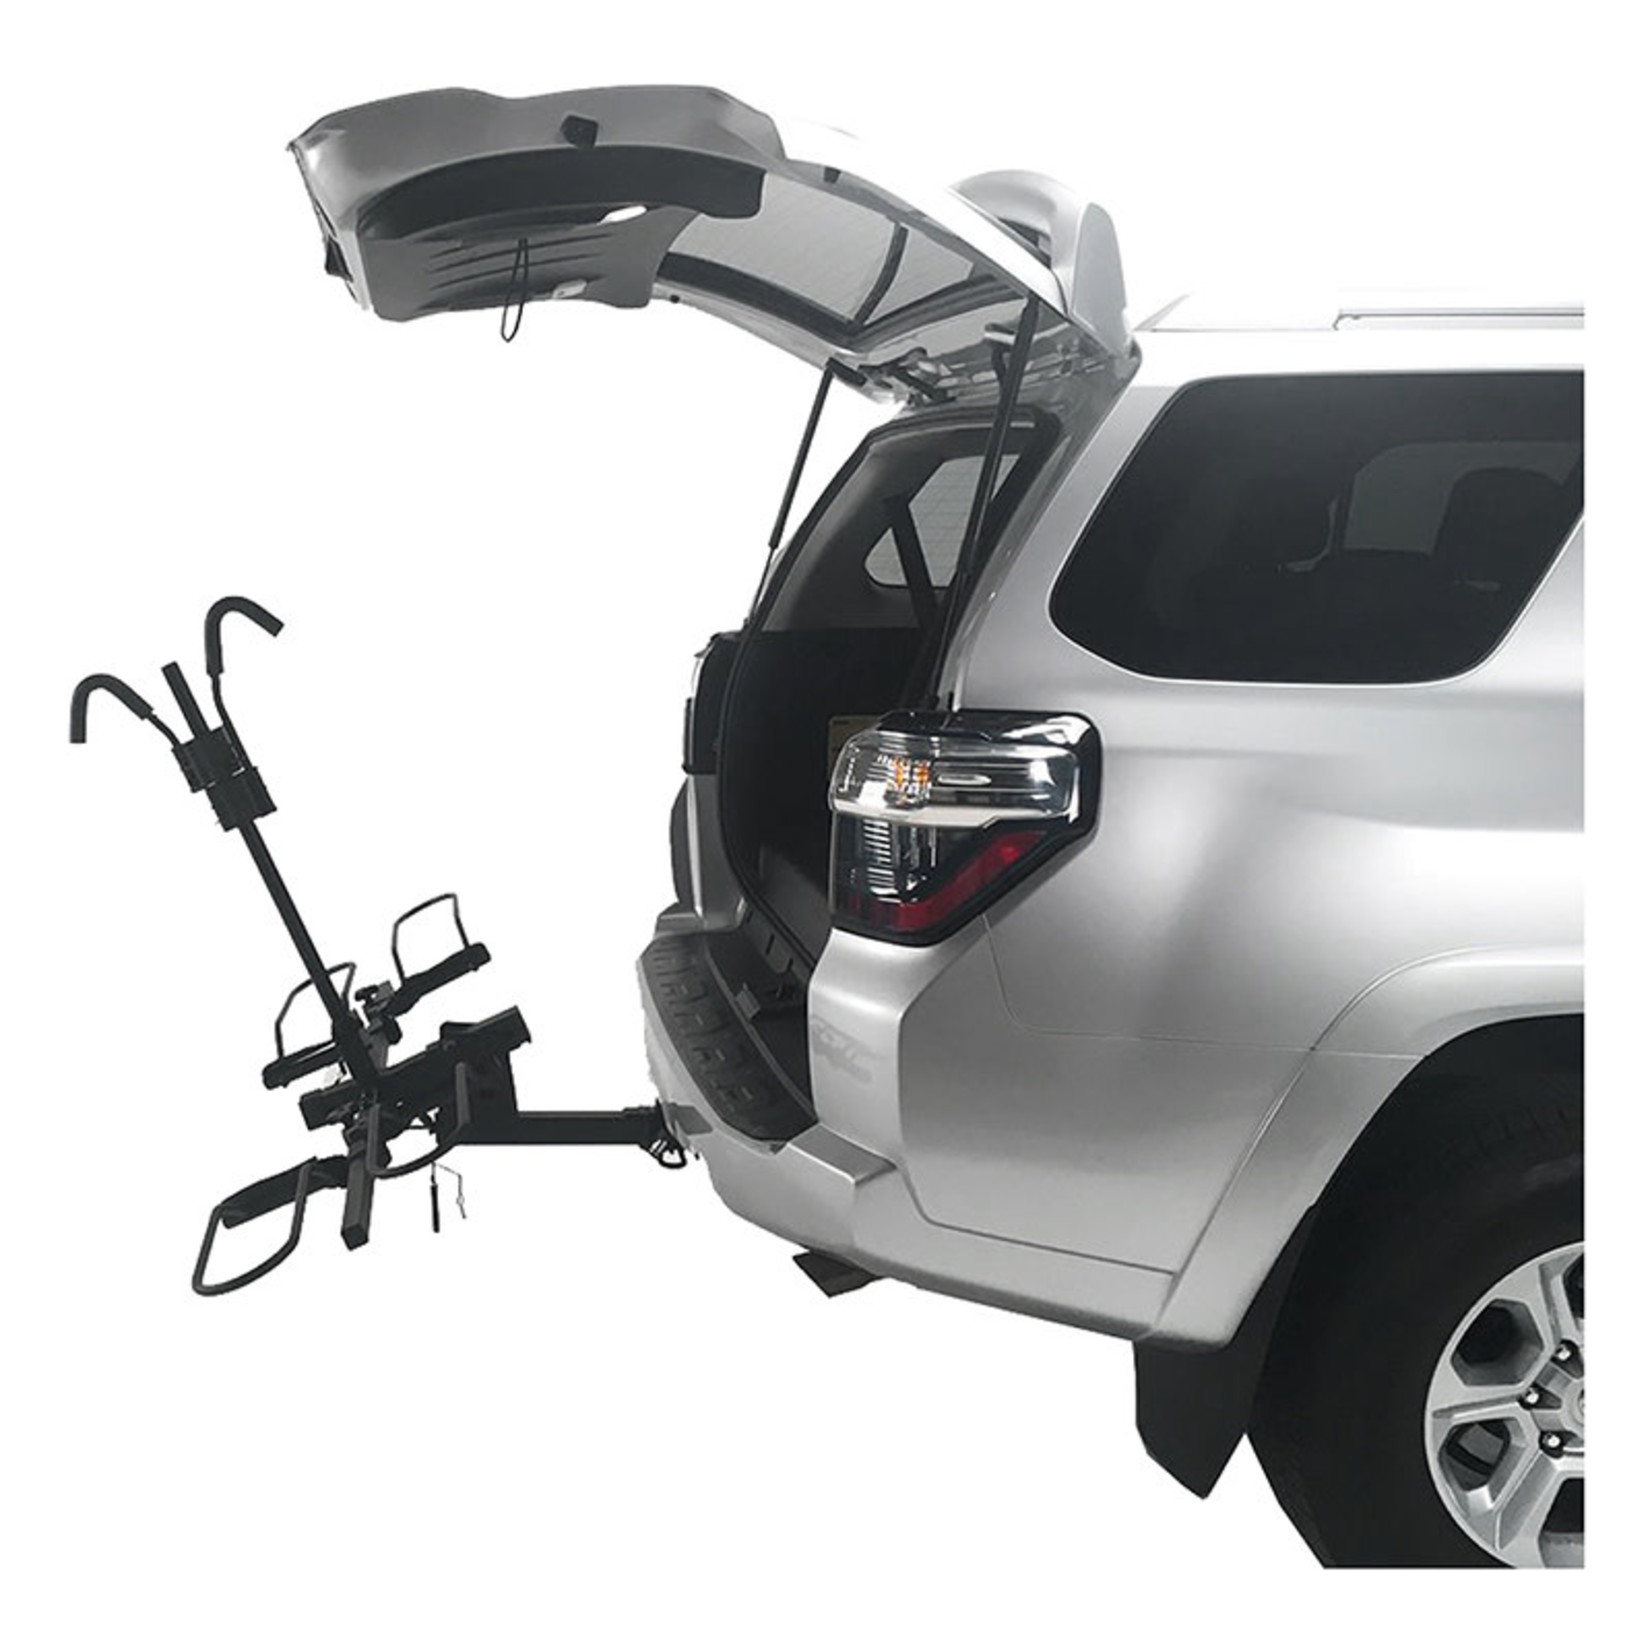 CAR RACK e-bike Hollywood HR1560 Sport Rider SE UP TO 5in TIRE 1-1/4in and 2 in